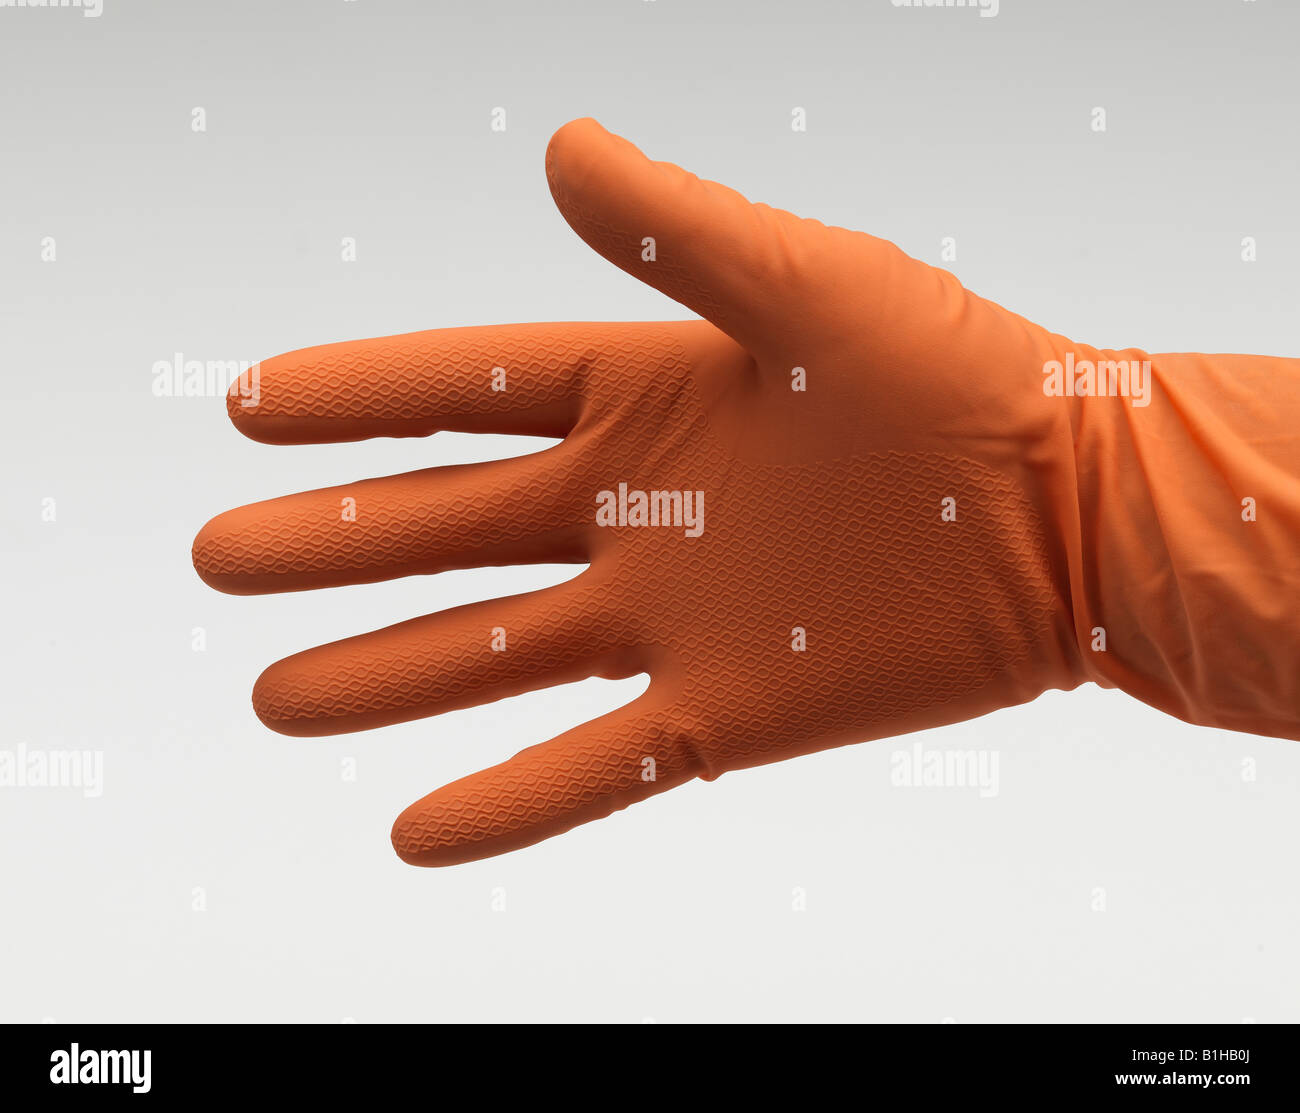 Gloves Glove Orange Cooking Bathroom Toilet Wc Kitchen